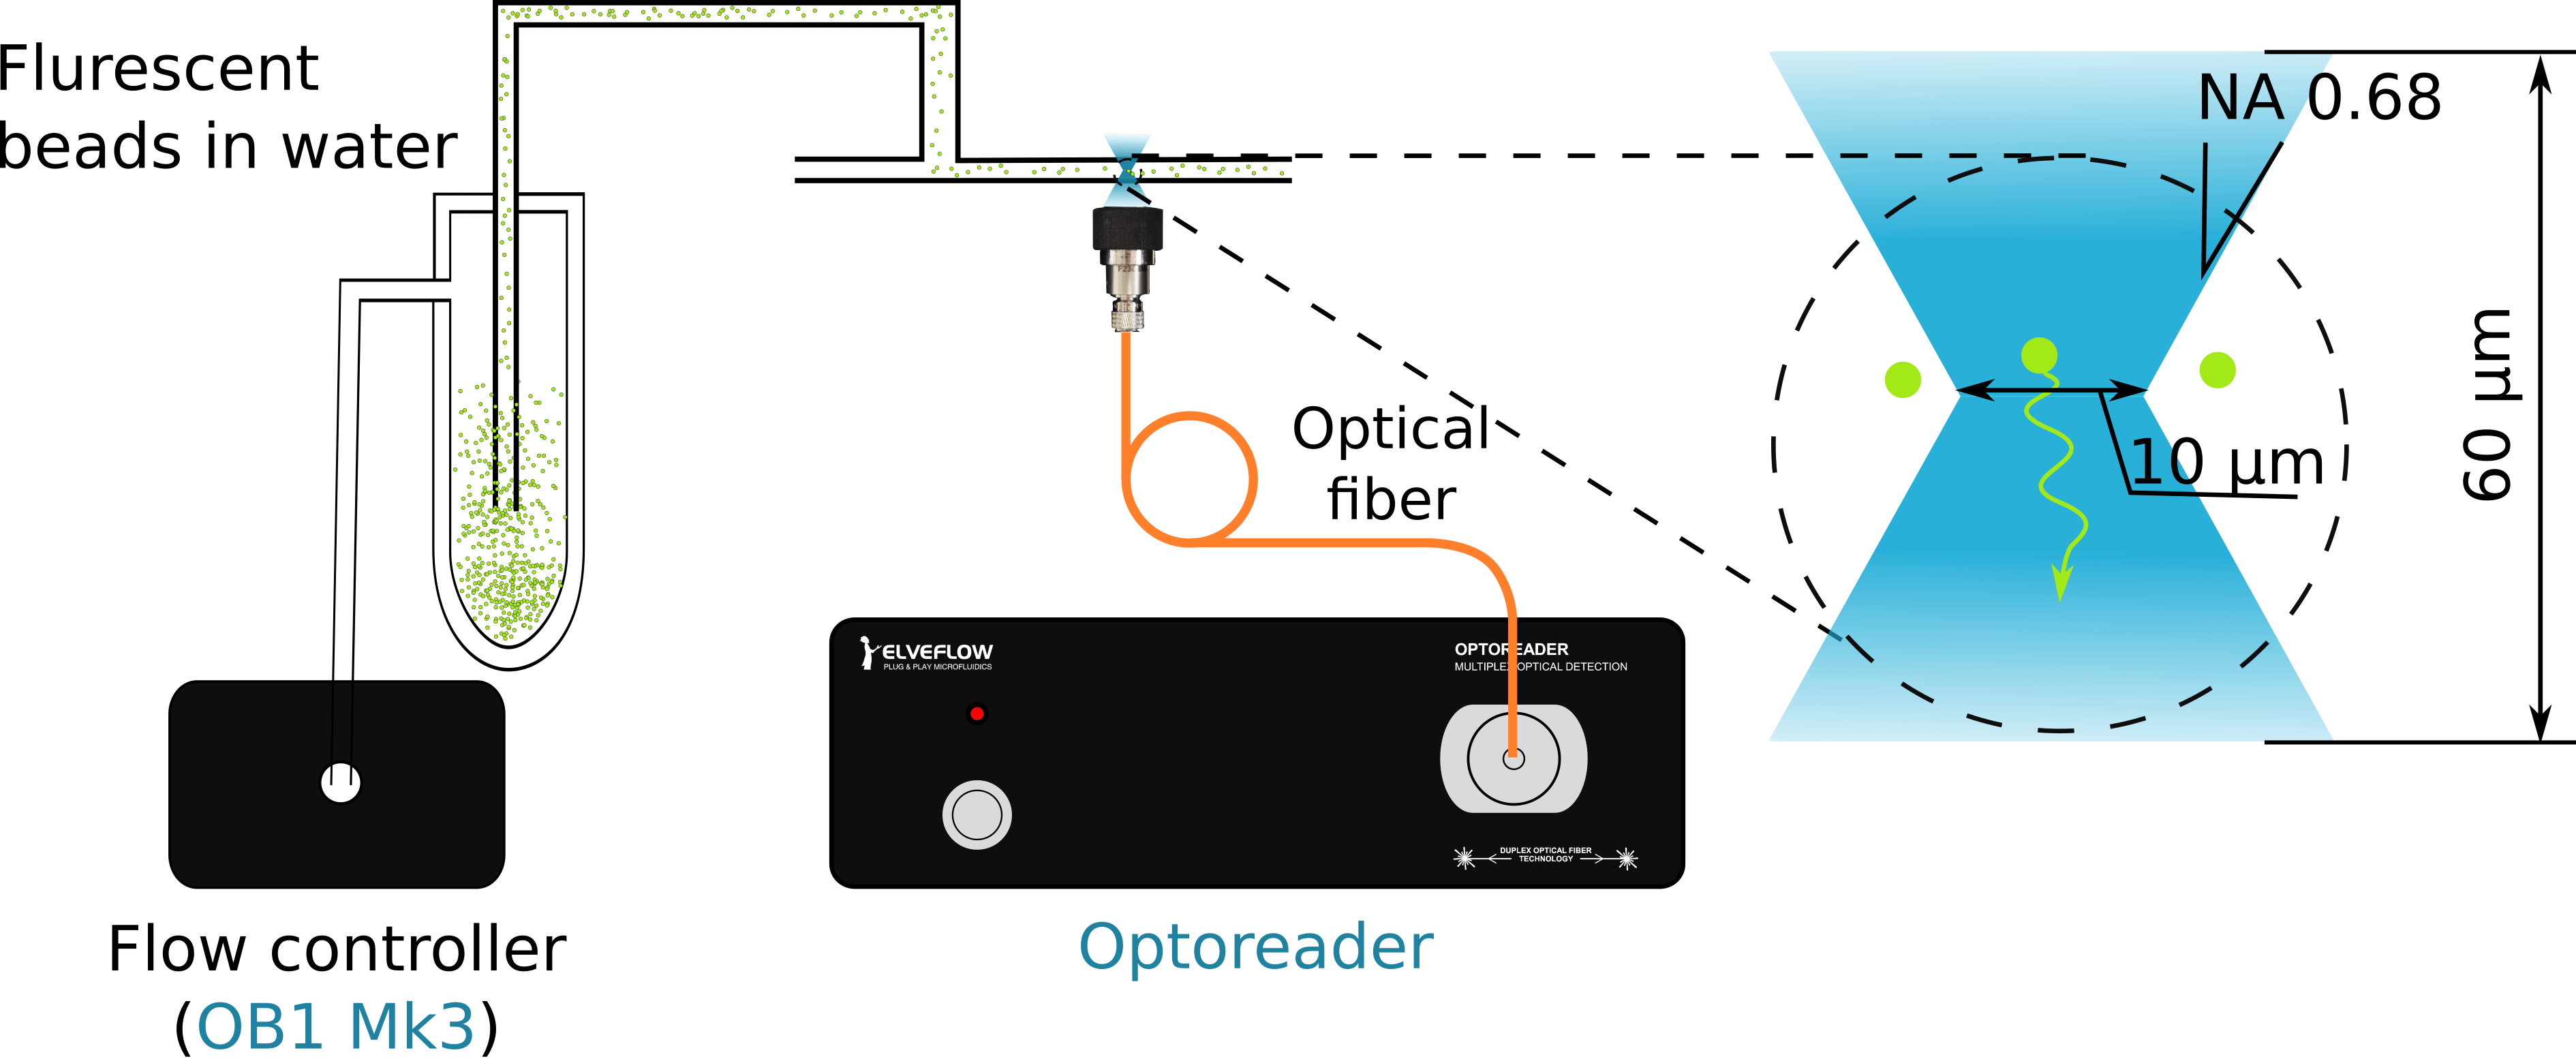 Fluorescence particle detection with OptoReader and Ob1